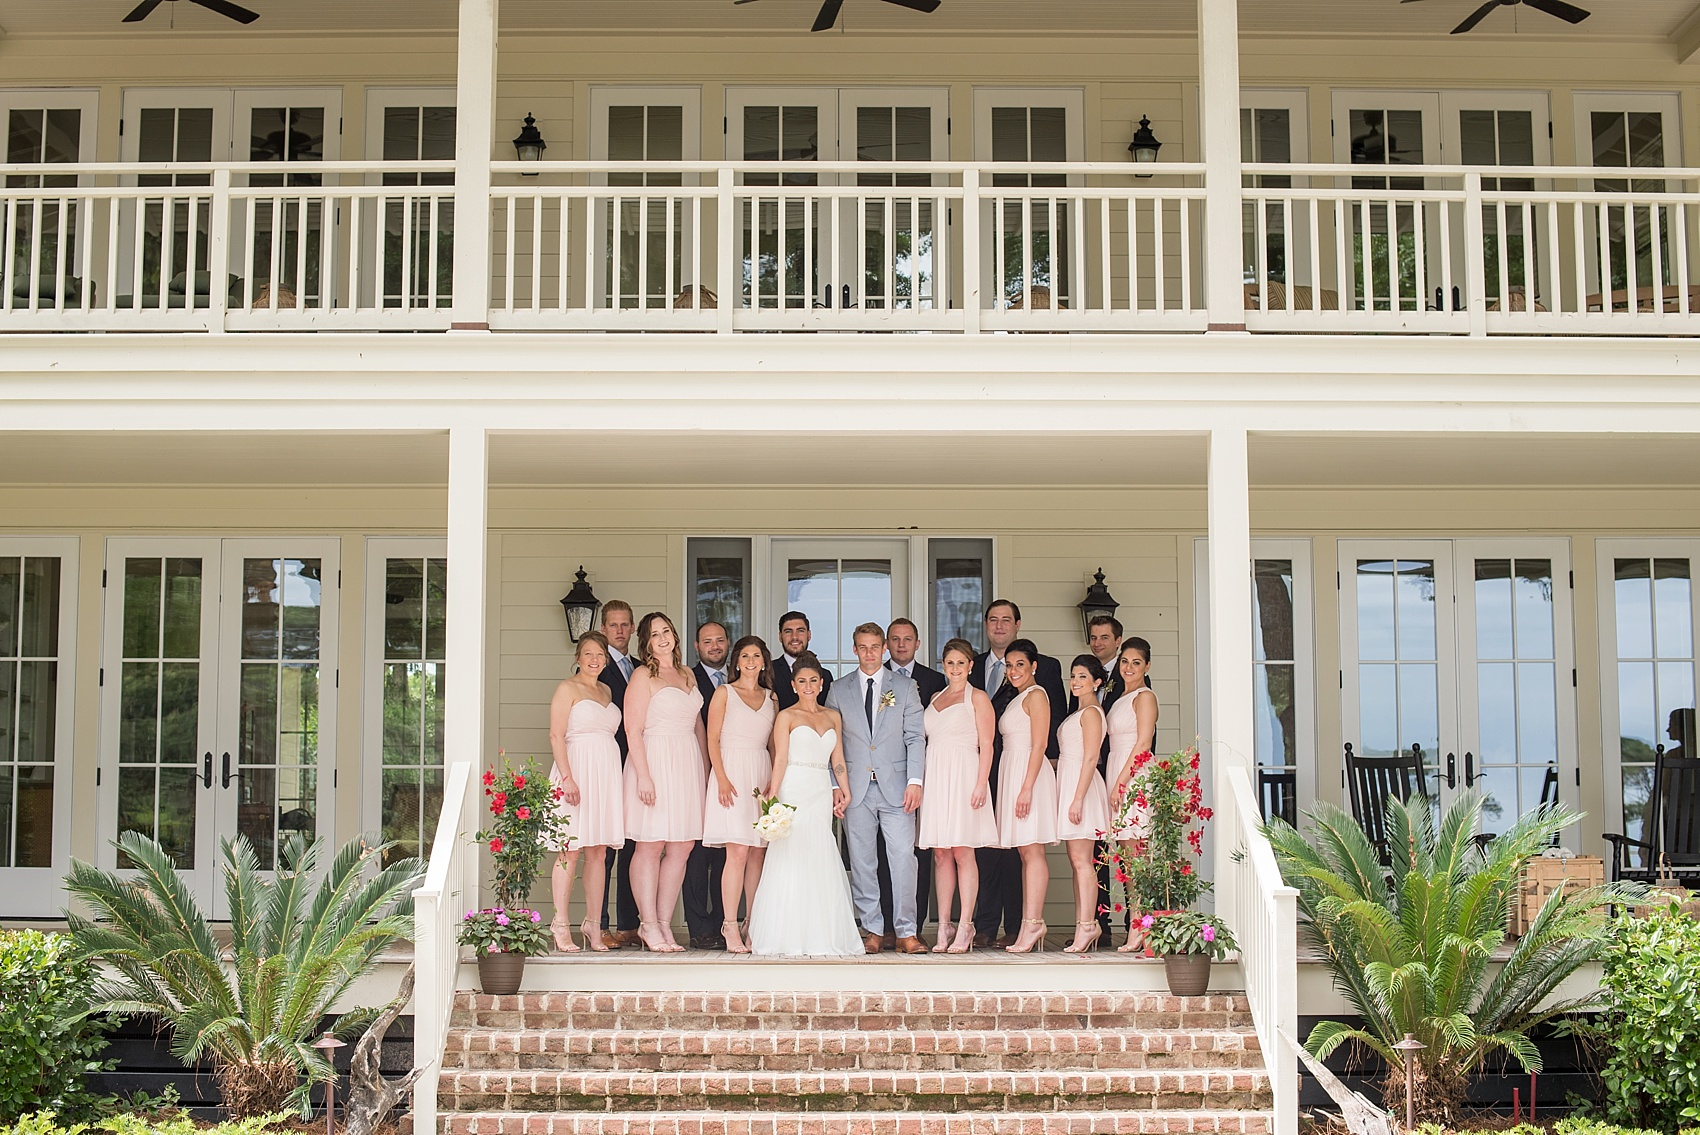 Groomsmen in navy Zara suits and bridesmaids in short pink Bill Levkoff dresses. Wedding party at Haig Point, South Carolina, off the coast of Hilton Head. Photos by Mikkel Paige Photography. Baby's breath bouquets and succulent boutonnieres complete the look.